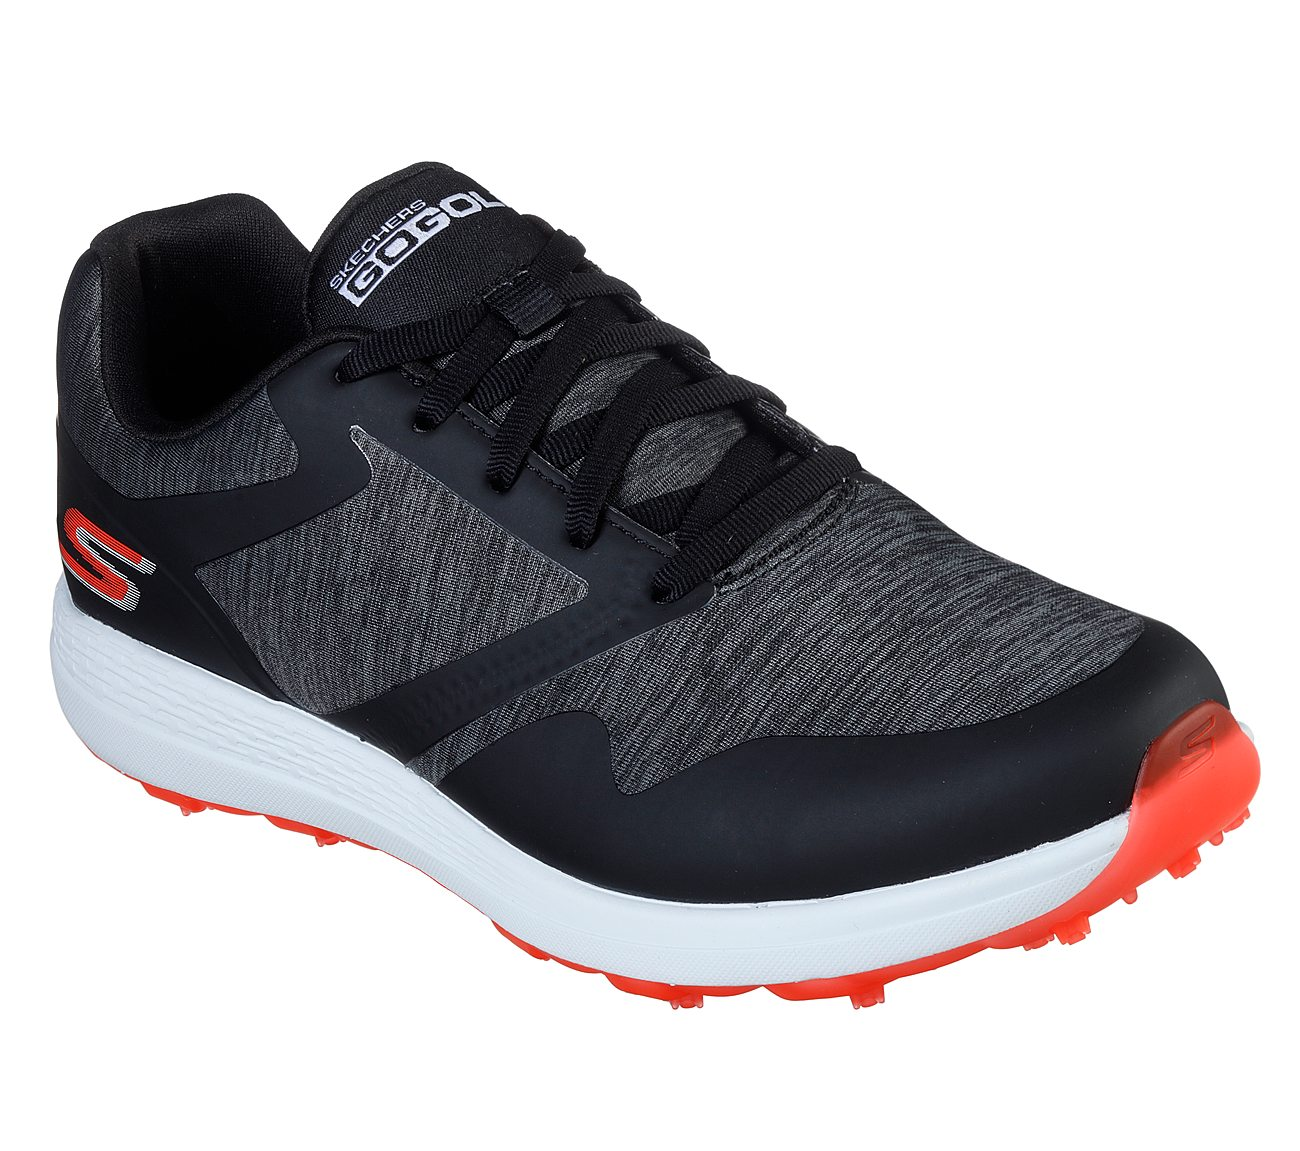 SKECHERS GO GOLF Max™ - Cut